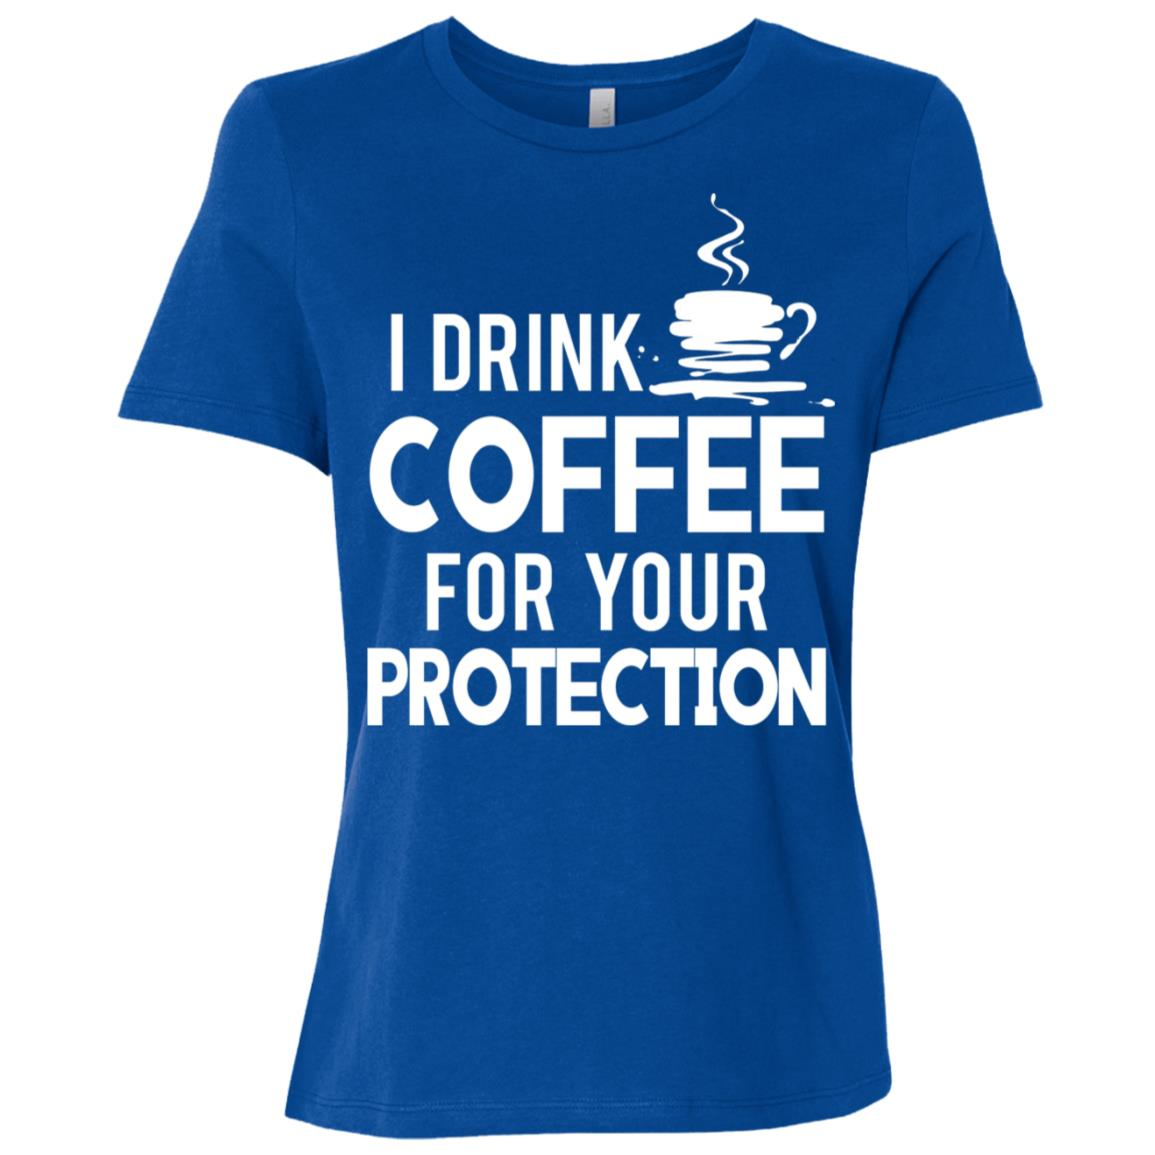 I Drink Coffee For Your Protection Funny Women Short Sleeve T-Shirt